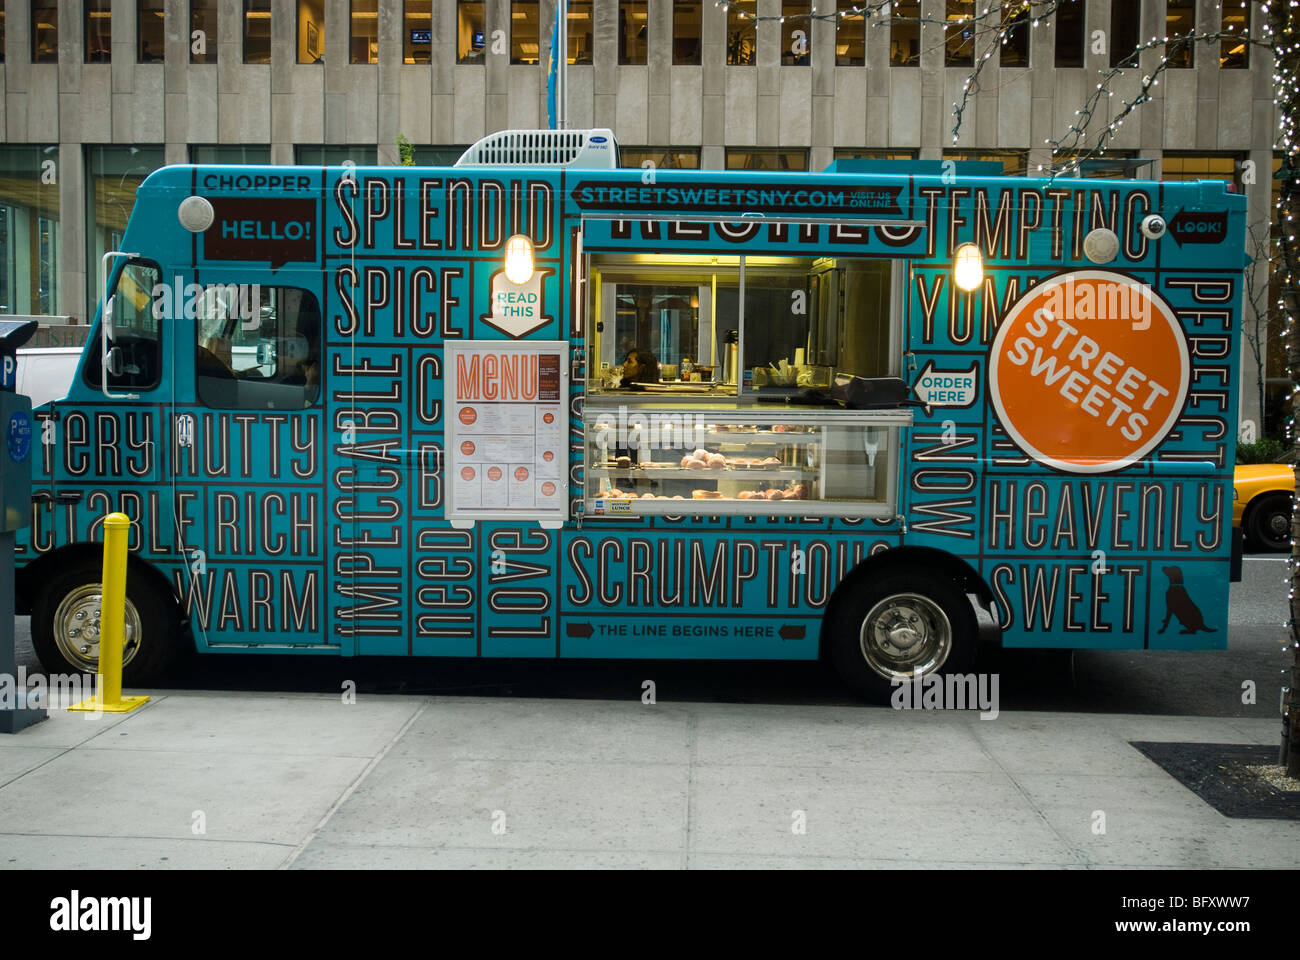 The Street Sweets Truck In Midtown In New York On Friday November Stock Photo Alamy